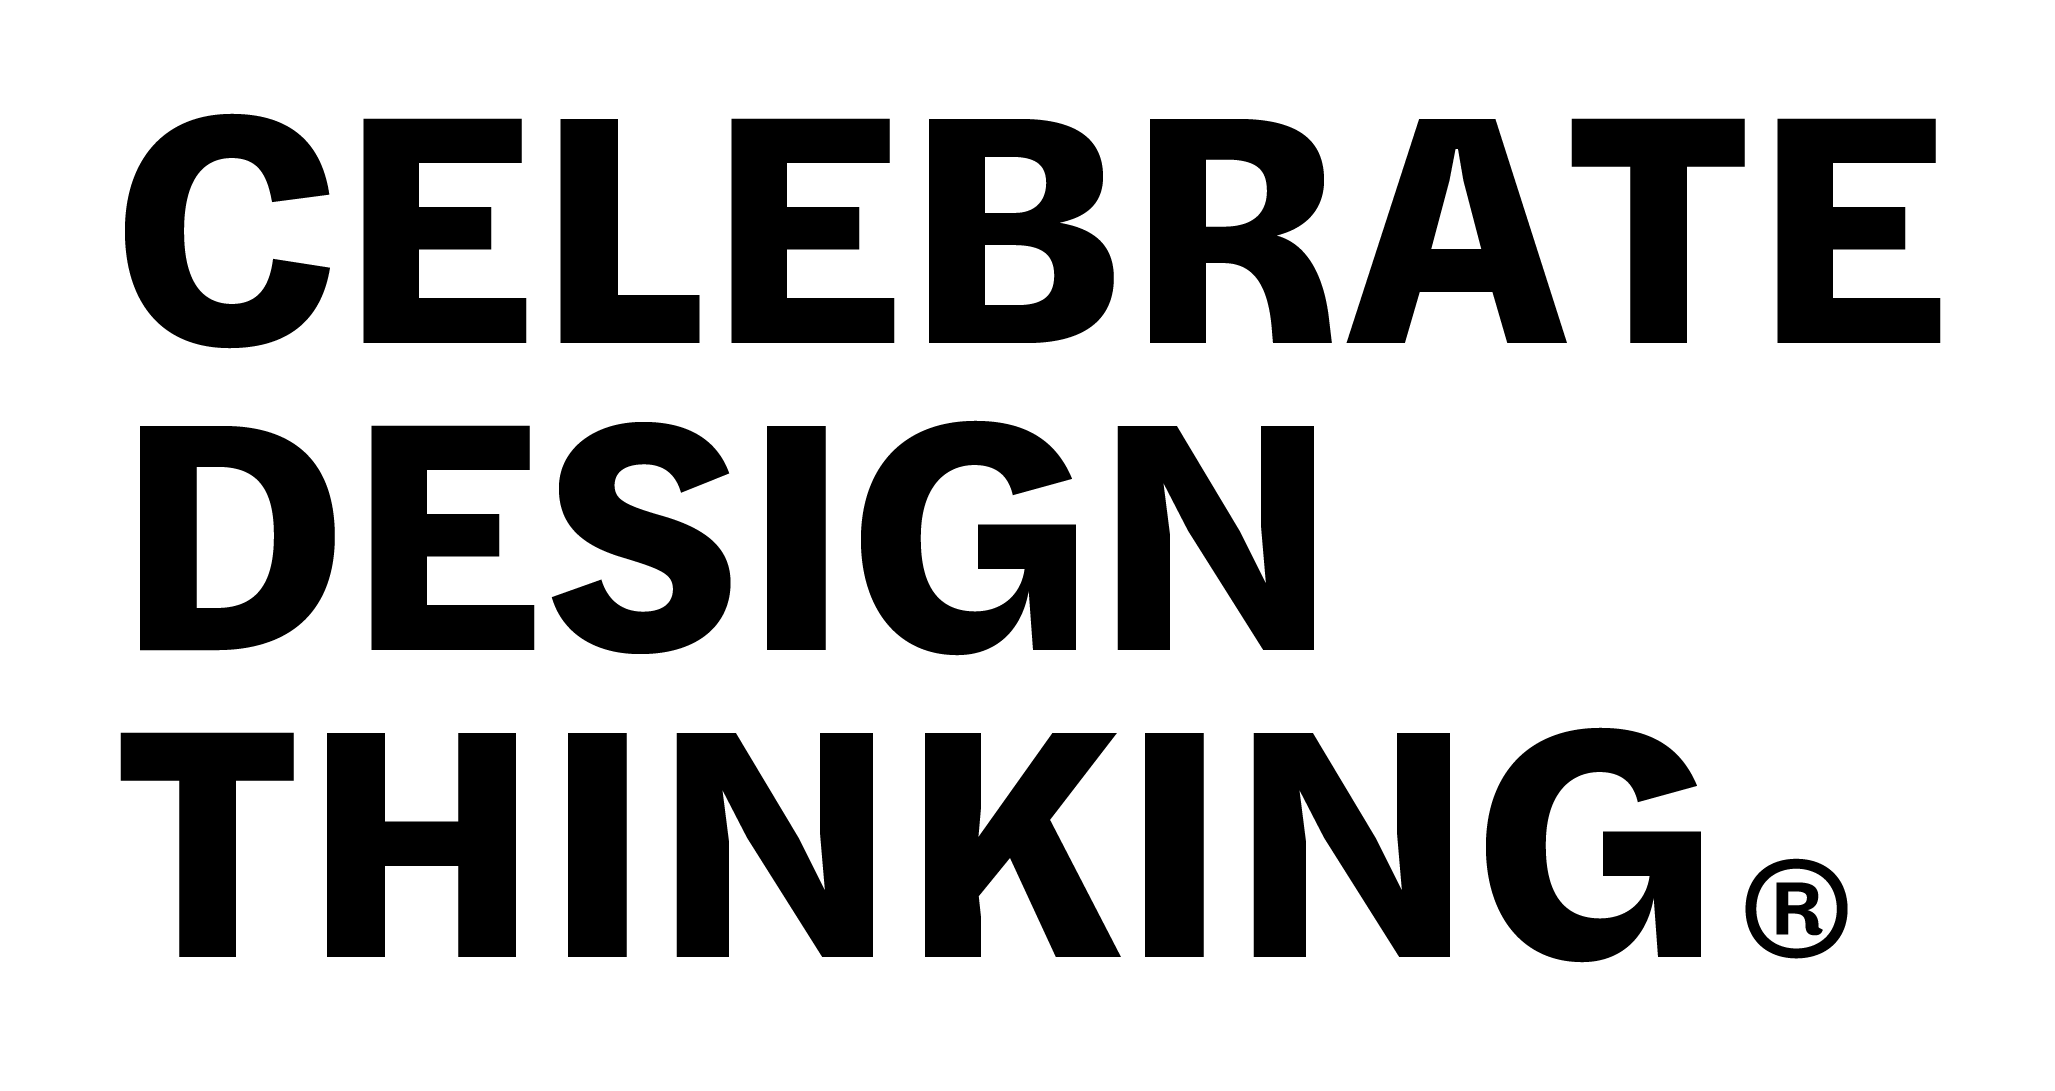 DBC Phrase - Celebrate - Design - Thinking.png